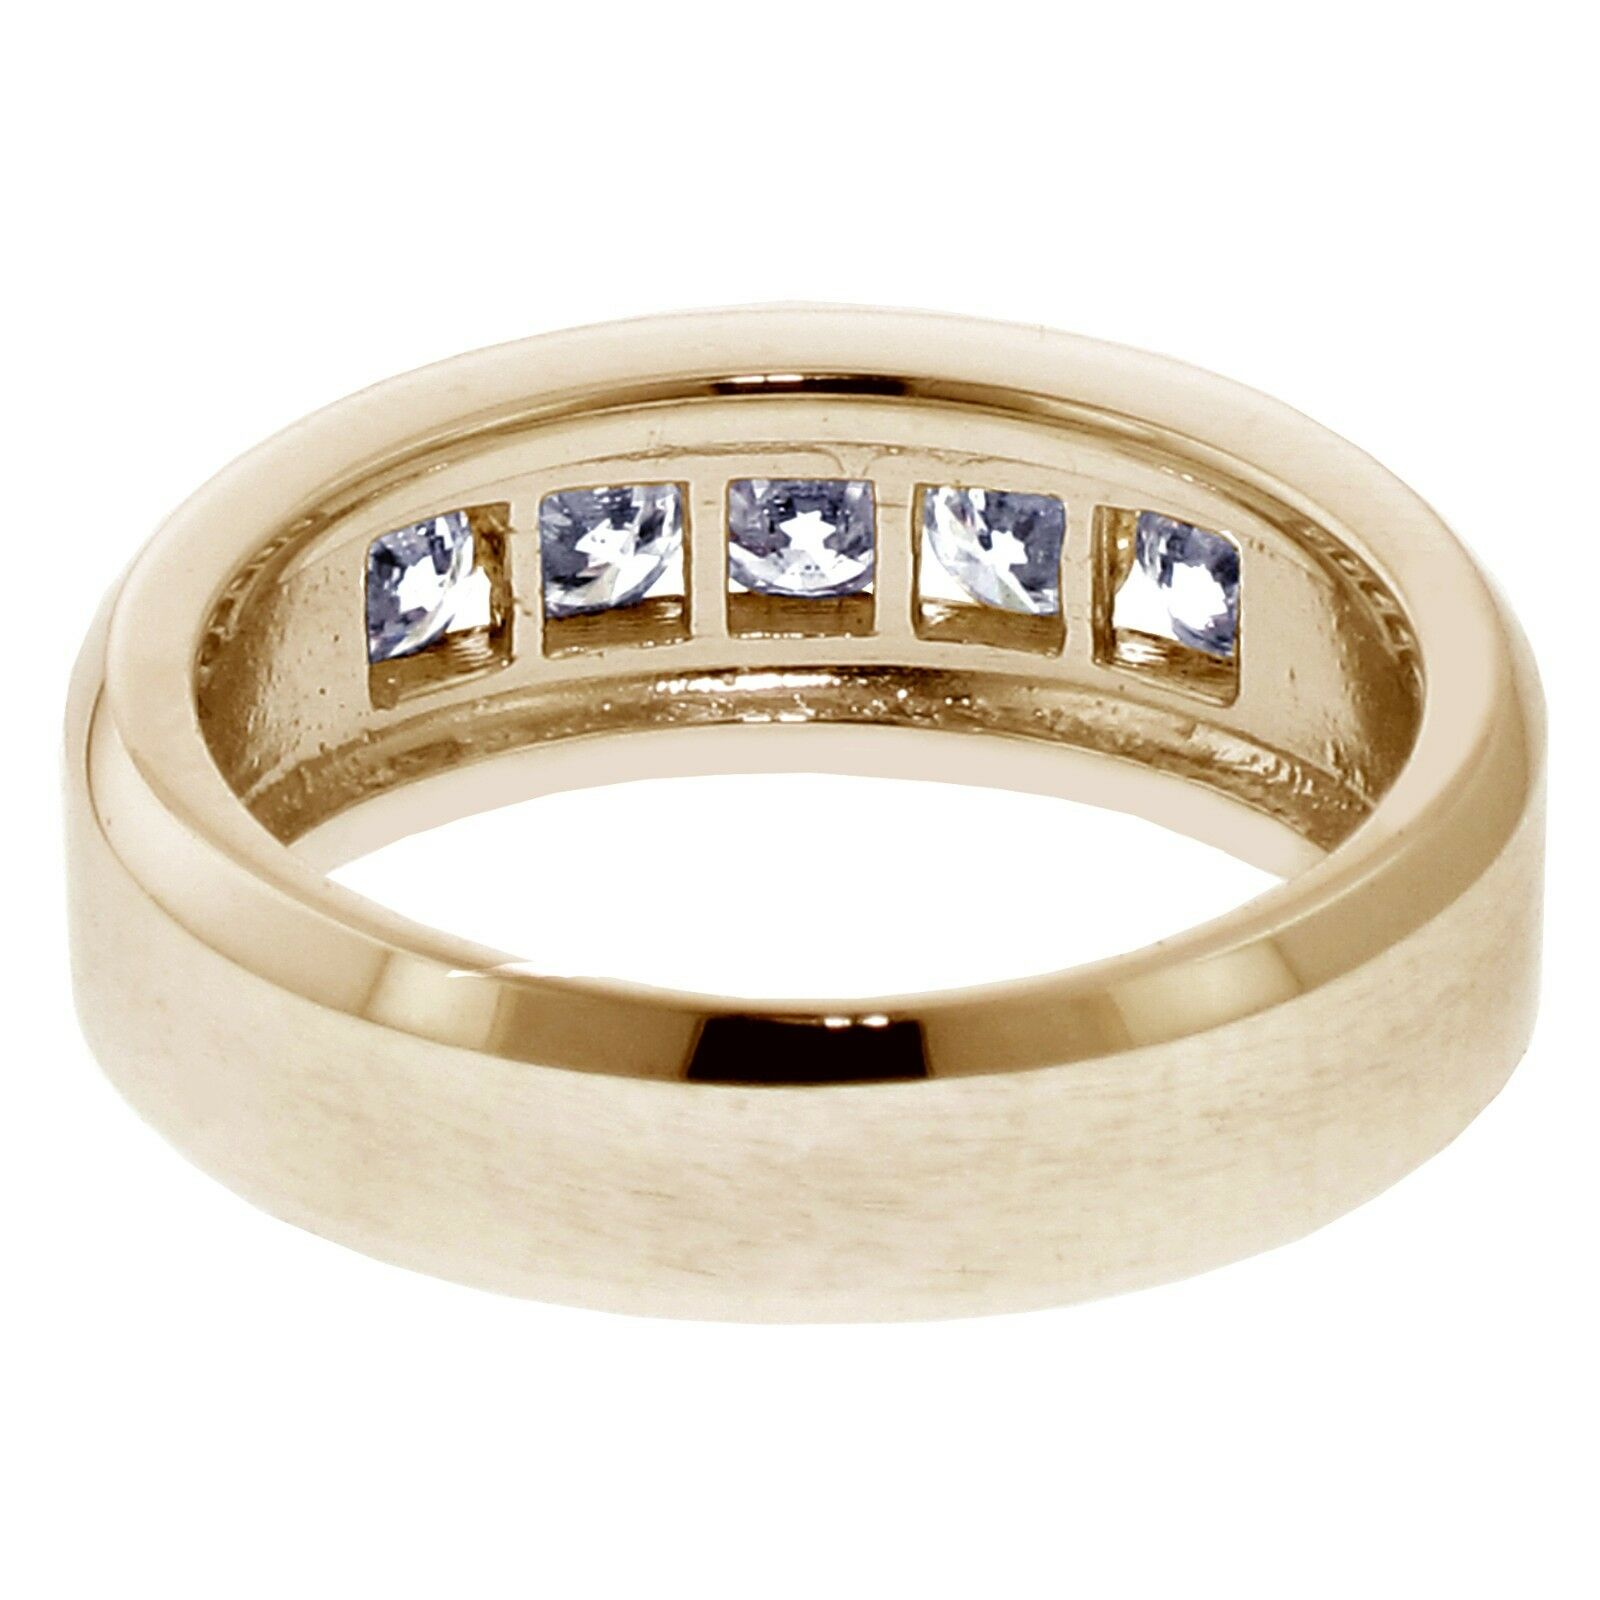 1.00 CT Channel Set Diamond Mens Wedding Ring in 14k Yellow Gold NEW! 5